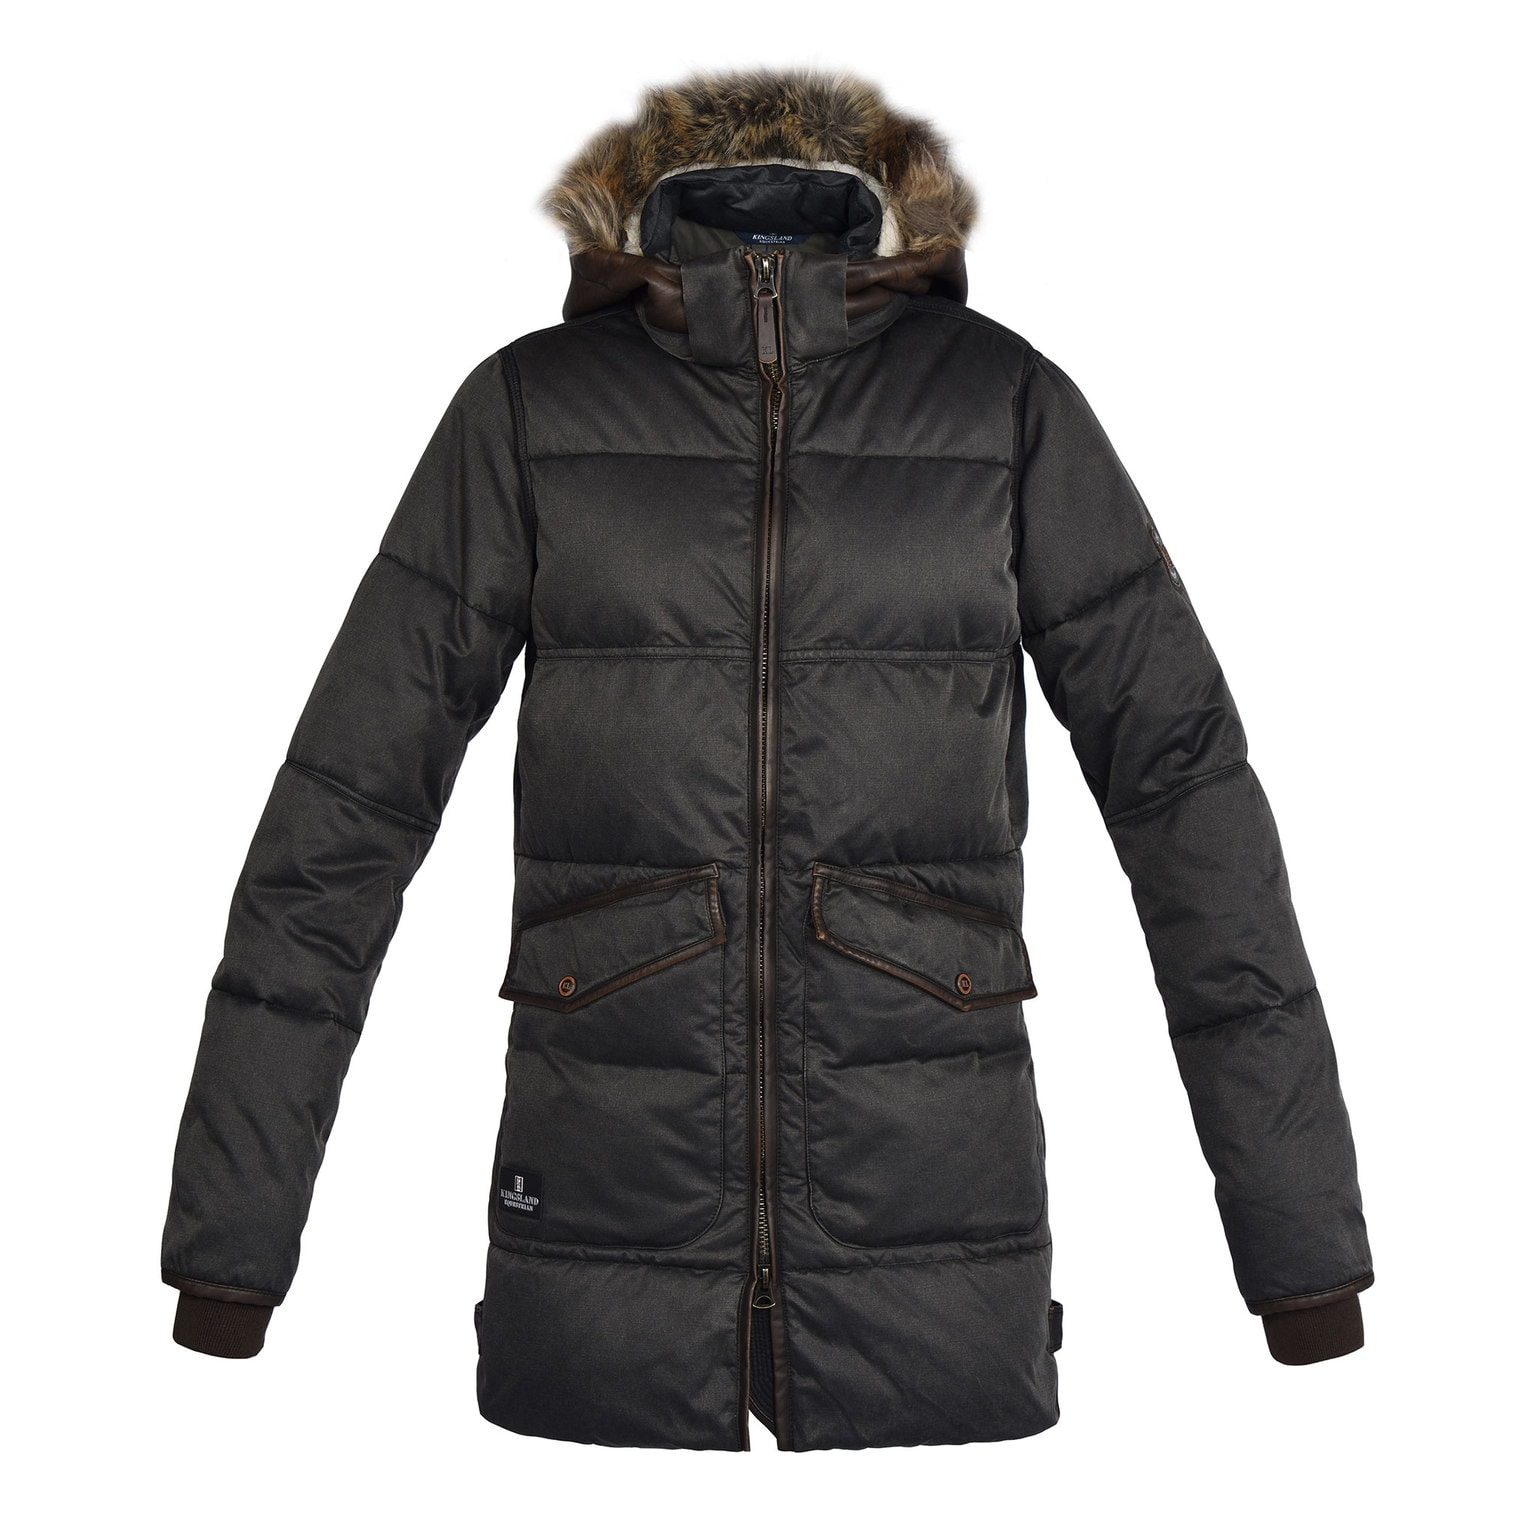 Kamet Unisex Insulated Parka